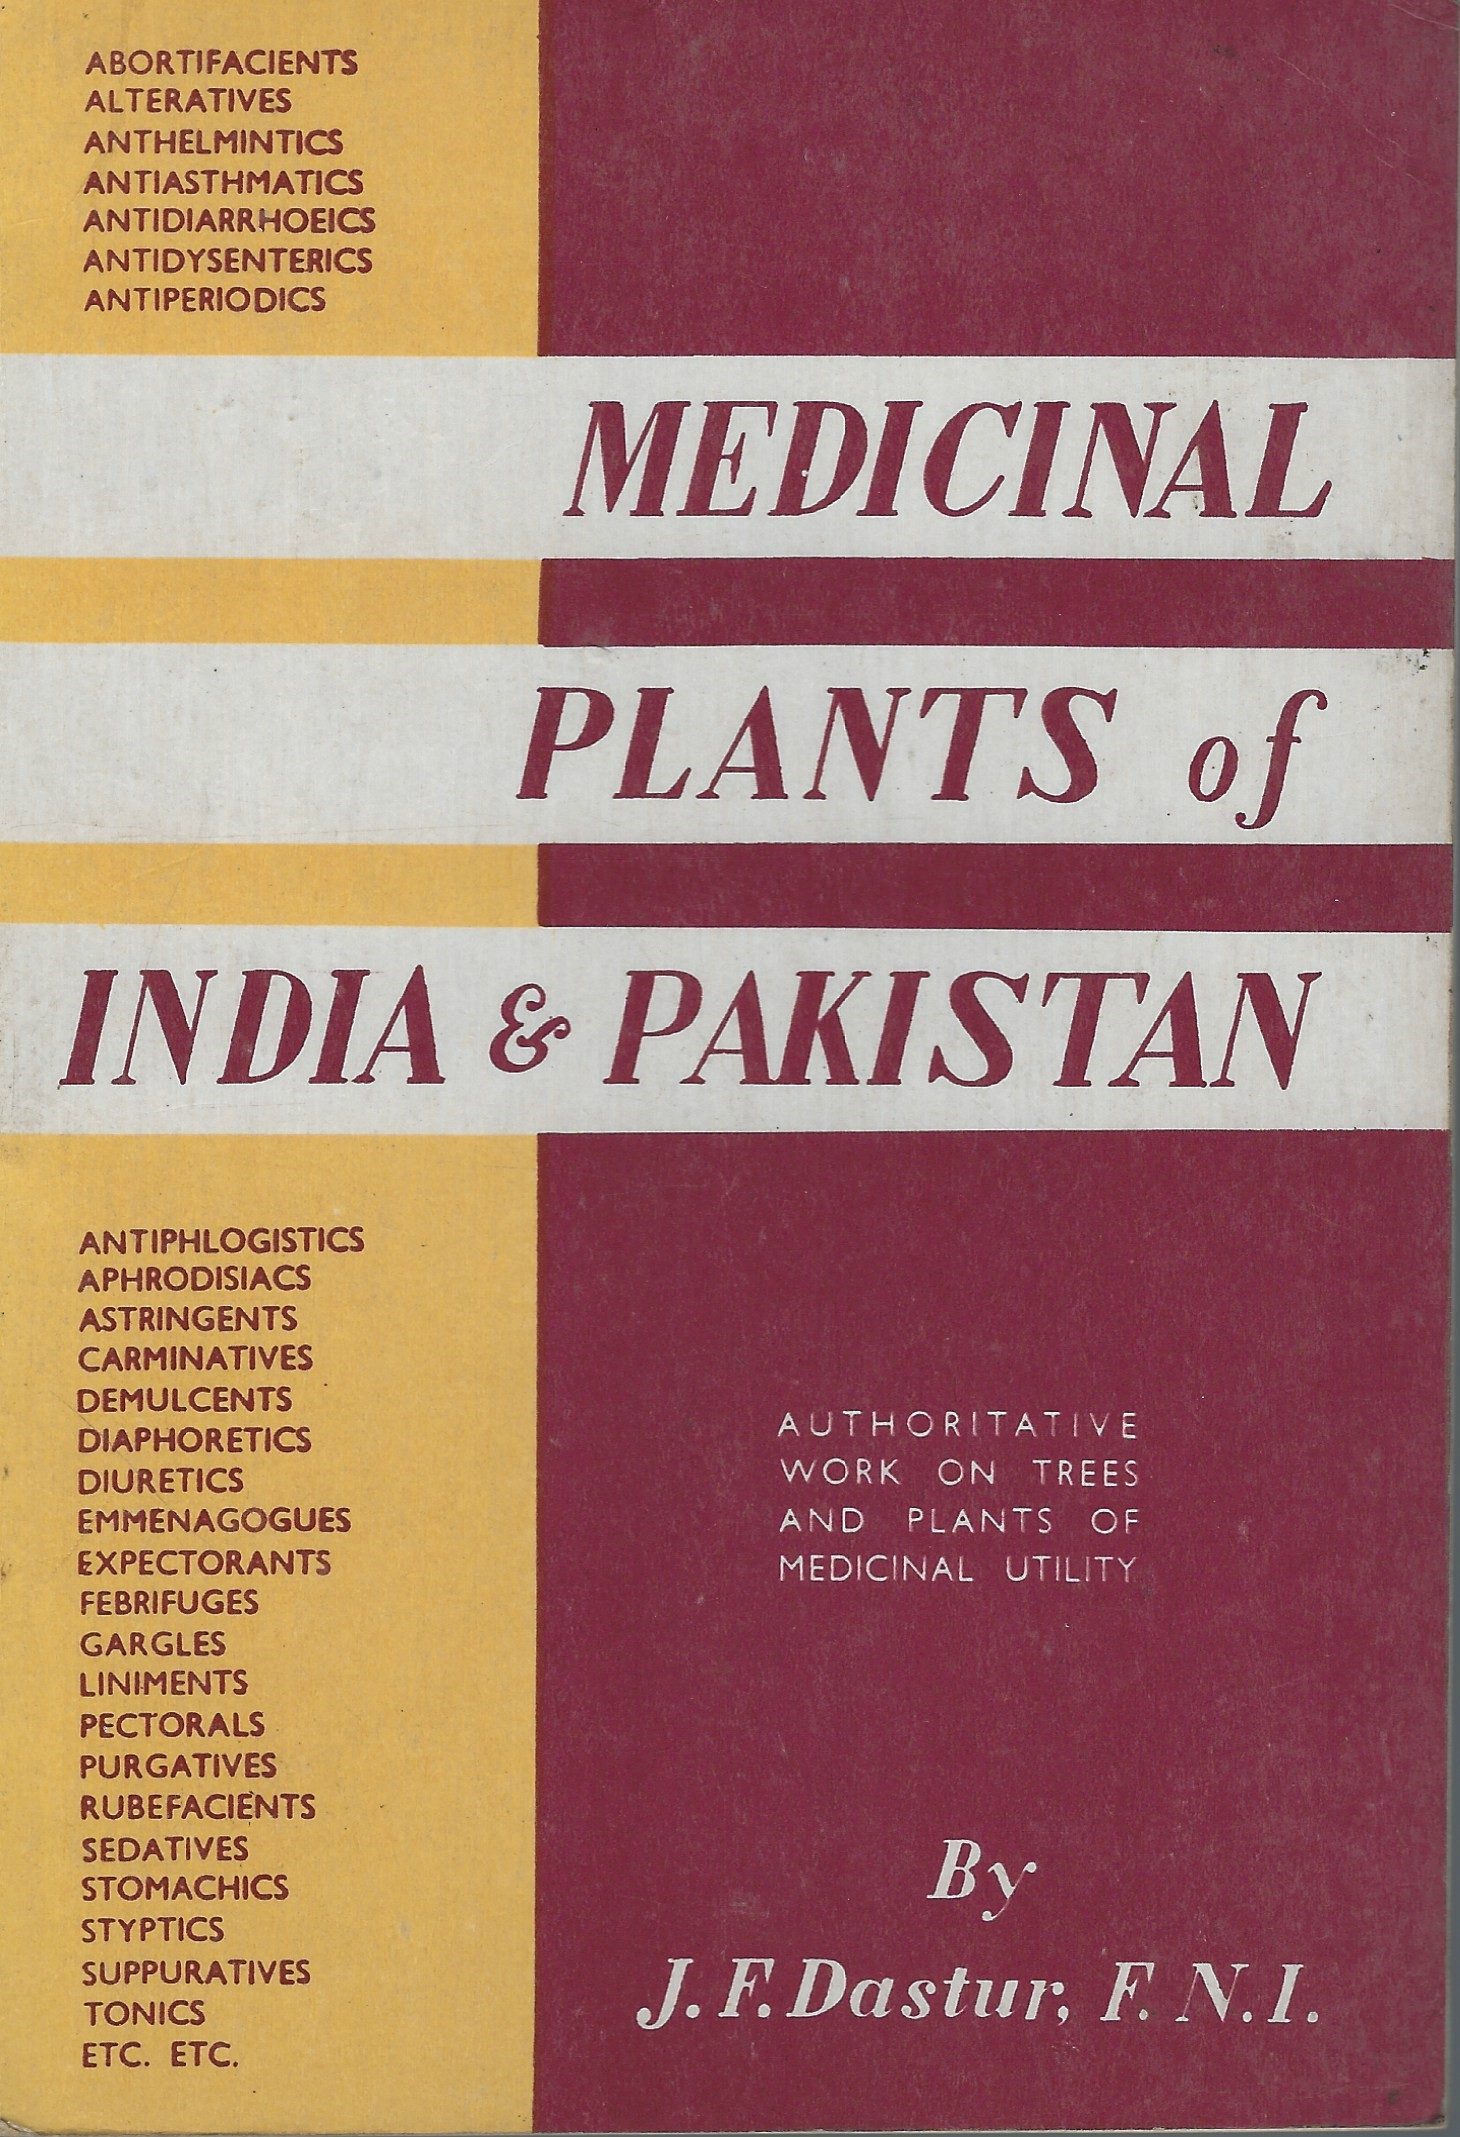 Image for Medicinal Plants of India and Pakistan. A Concise Work Describing Plants Used for Drugs and Remedies According to Ayurvedic, Unani, Tibbi Systems and Mentioned in British and American Pharmacopoeias.